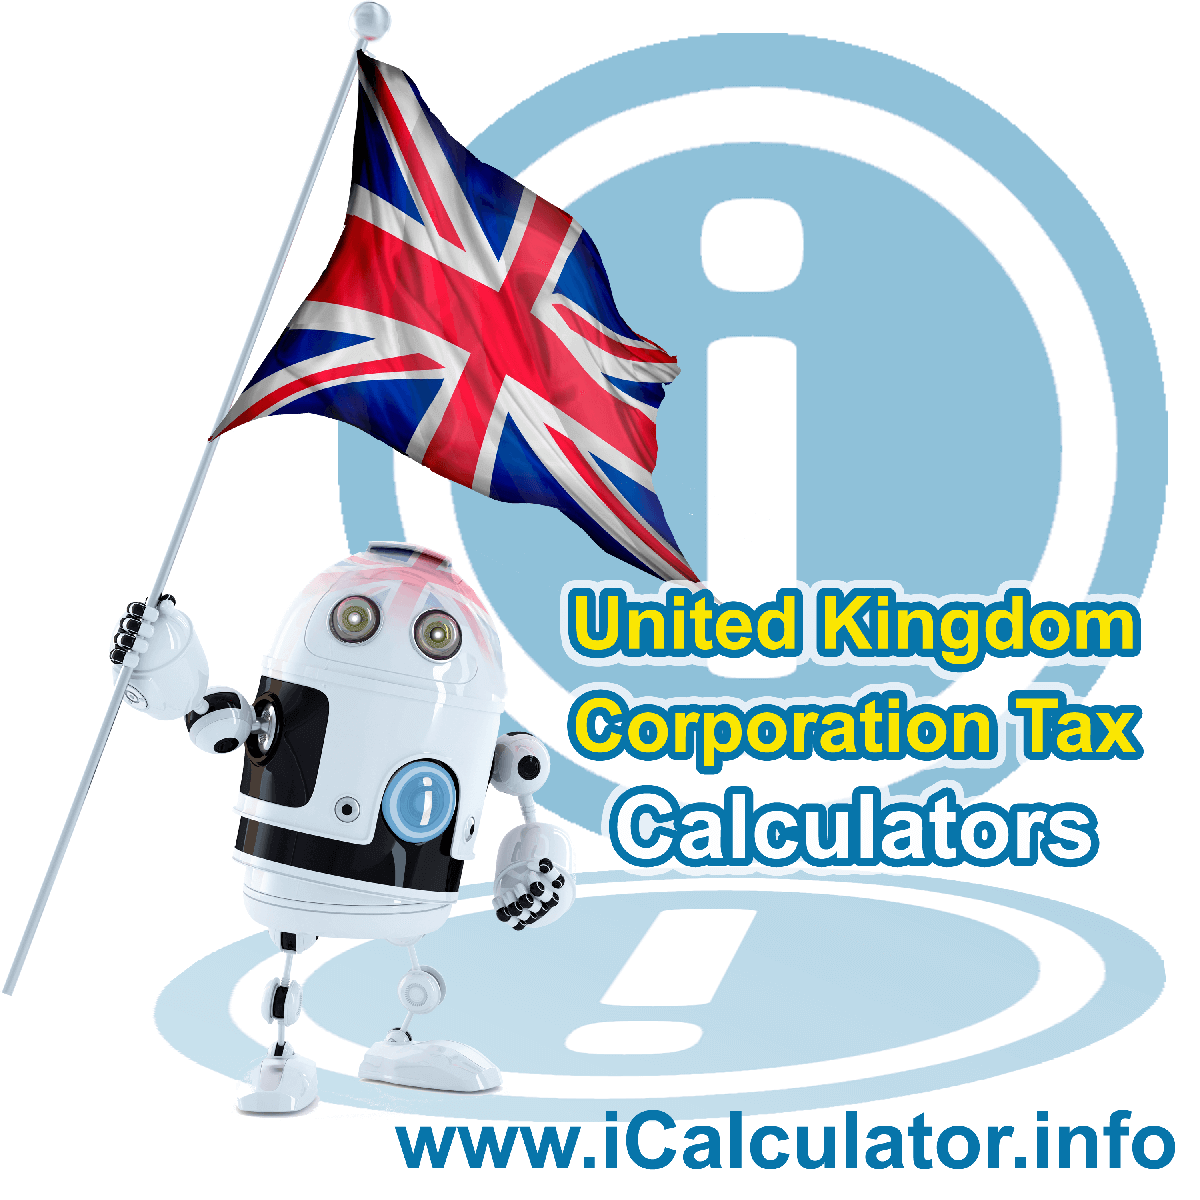 This image shows details about corporation tax calculation in the UK including finance and tax formula used to calculate corporation tax in the UK as integrated in the UK Corporation Tax Calculator 2020/21